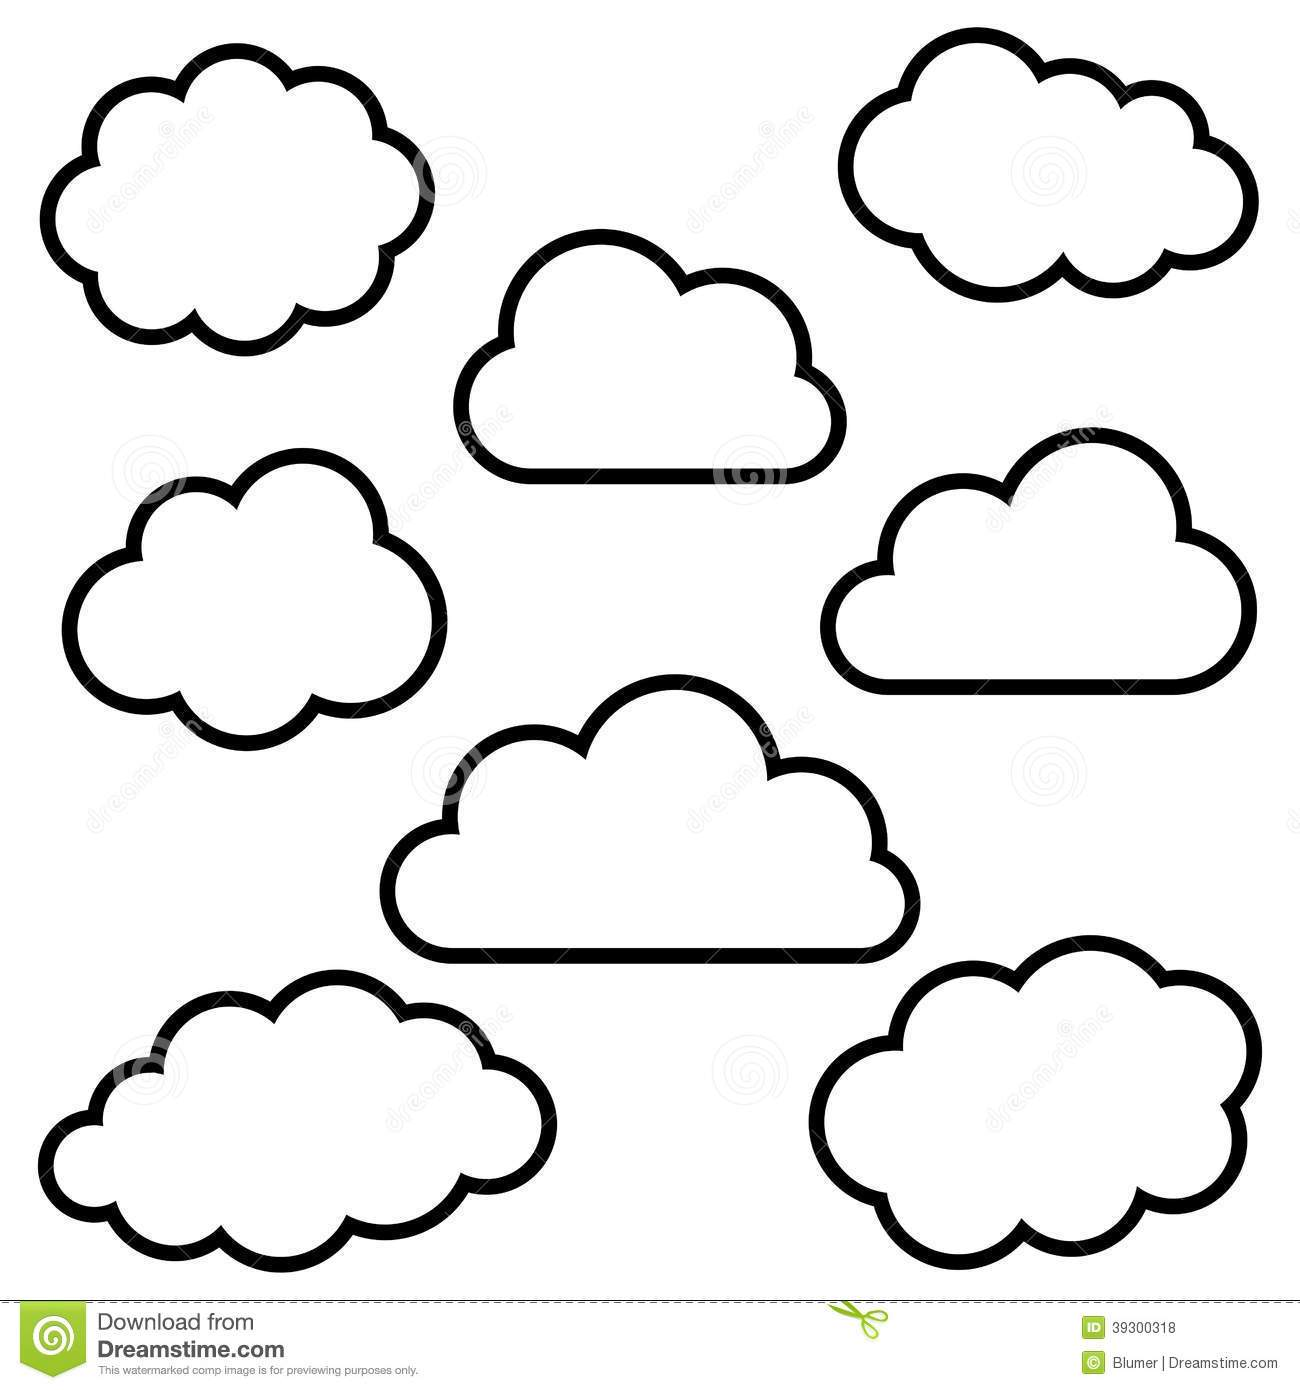 In the sky clipart black and white banner black and white library Sky clipart black and white 4 » Clipart Portal banner black and white library